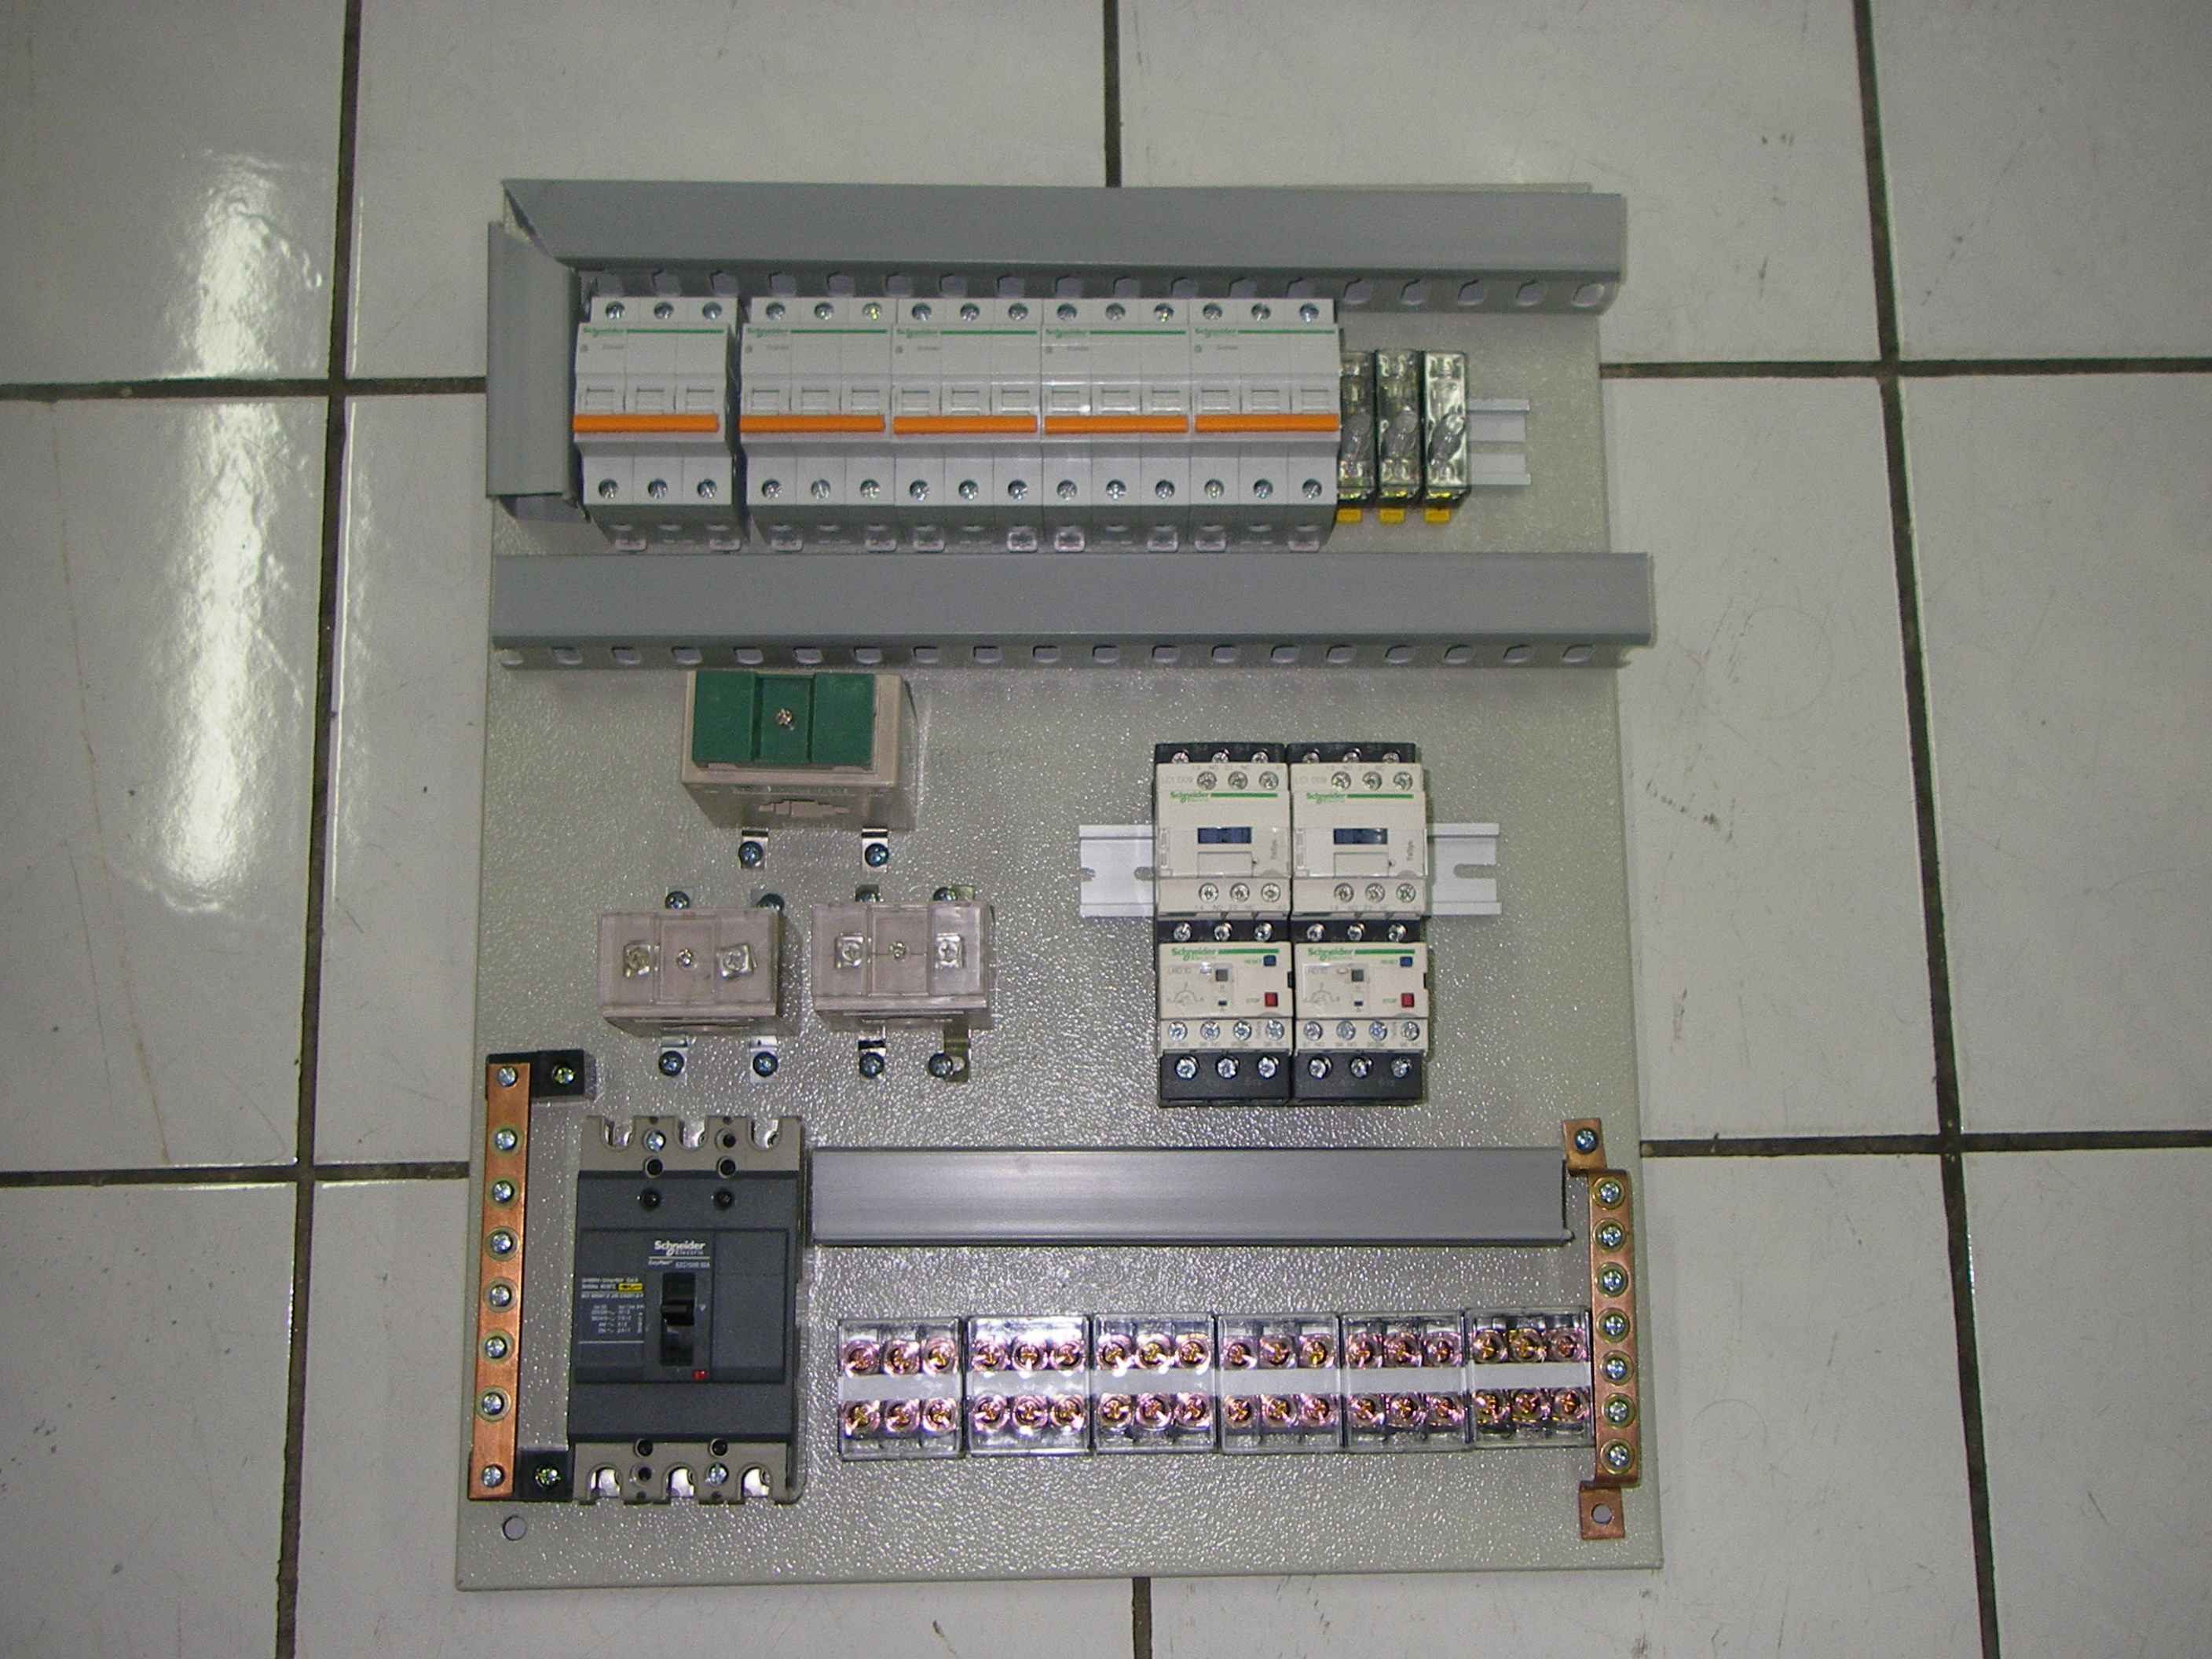 Terima Jasa perakitan Panel kontrol Listrik untuk industri ... on roof panel, pump panel, switch panel, fuse panel, drywall panel, glass panel, maintenance panel,